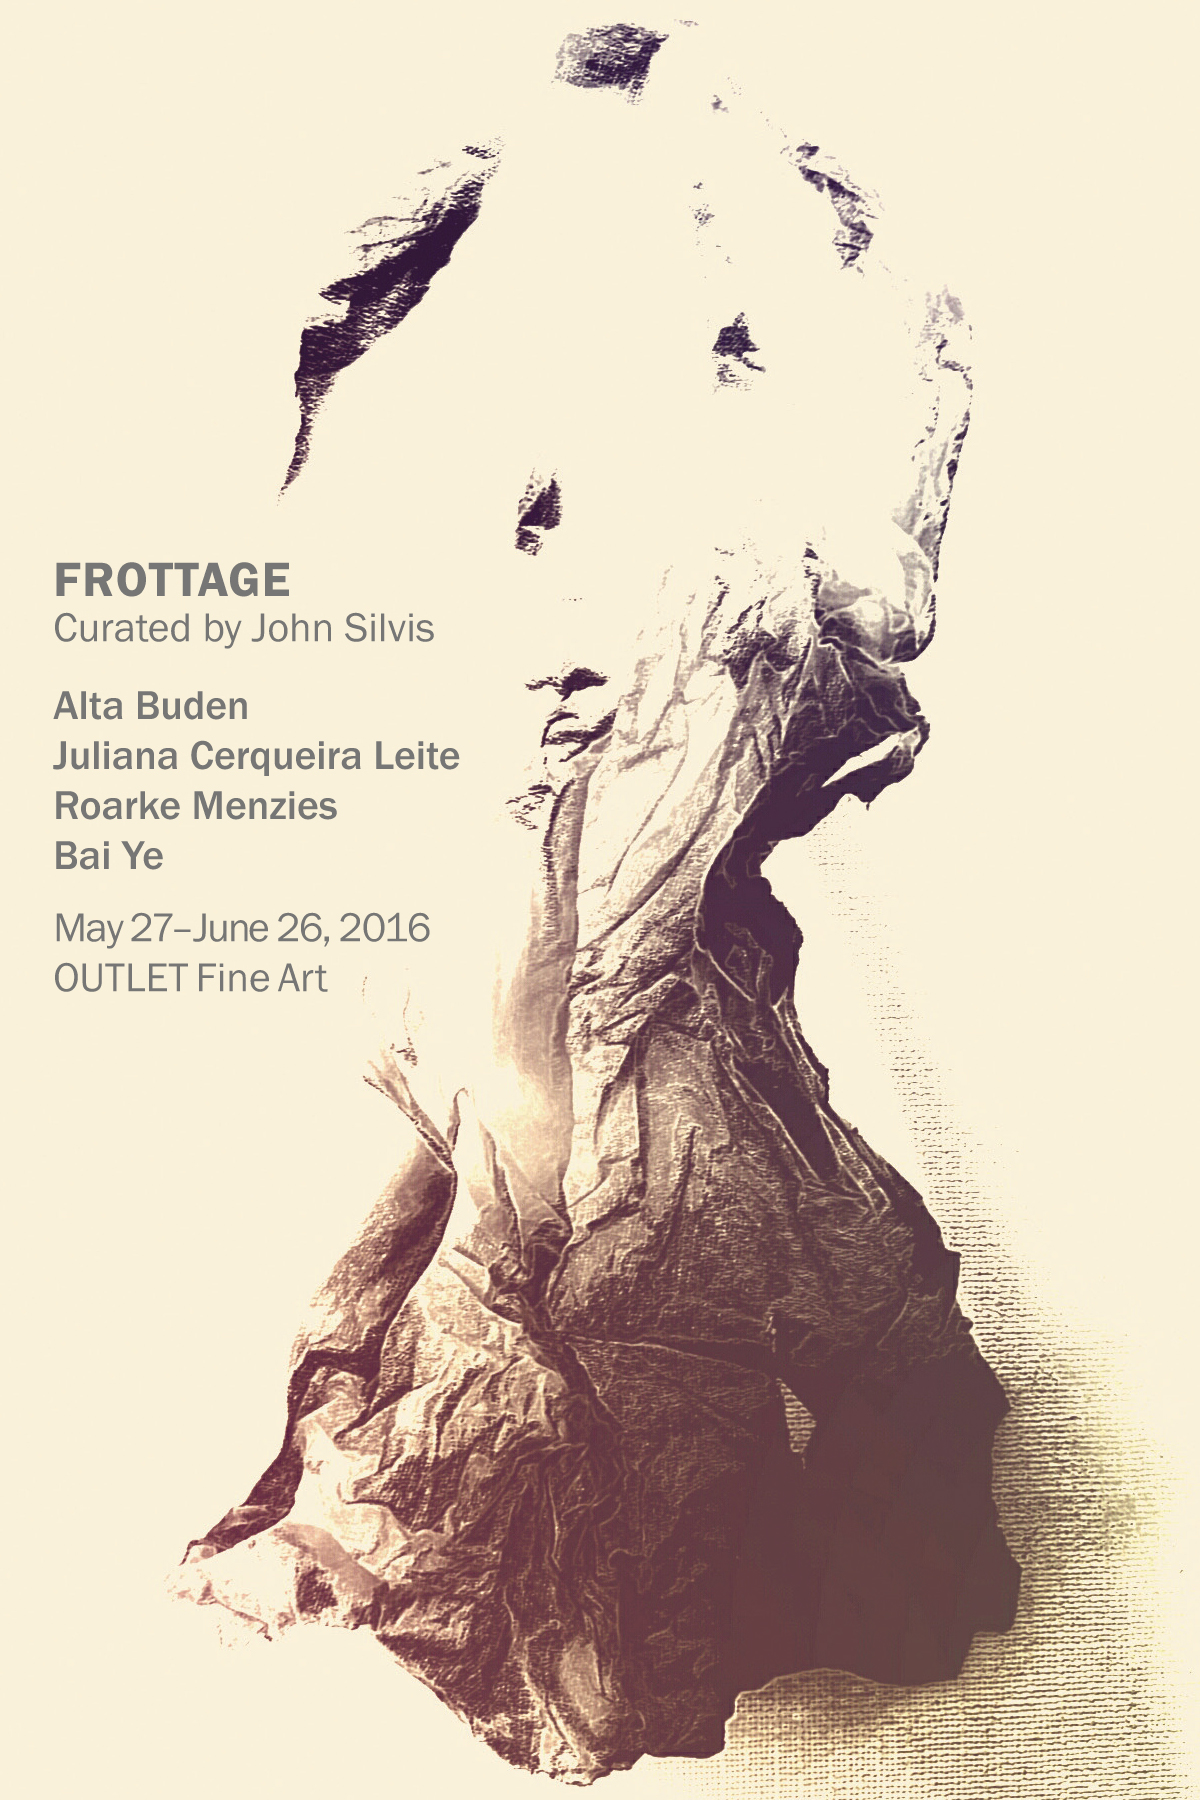 frottage-card-front-copy.jpg